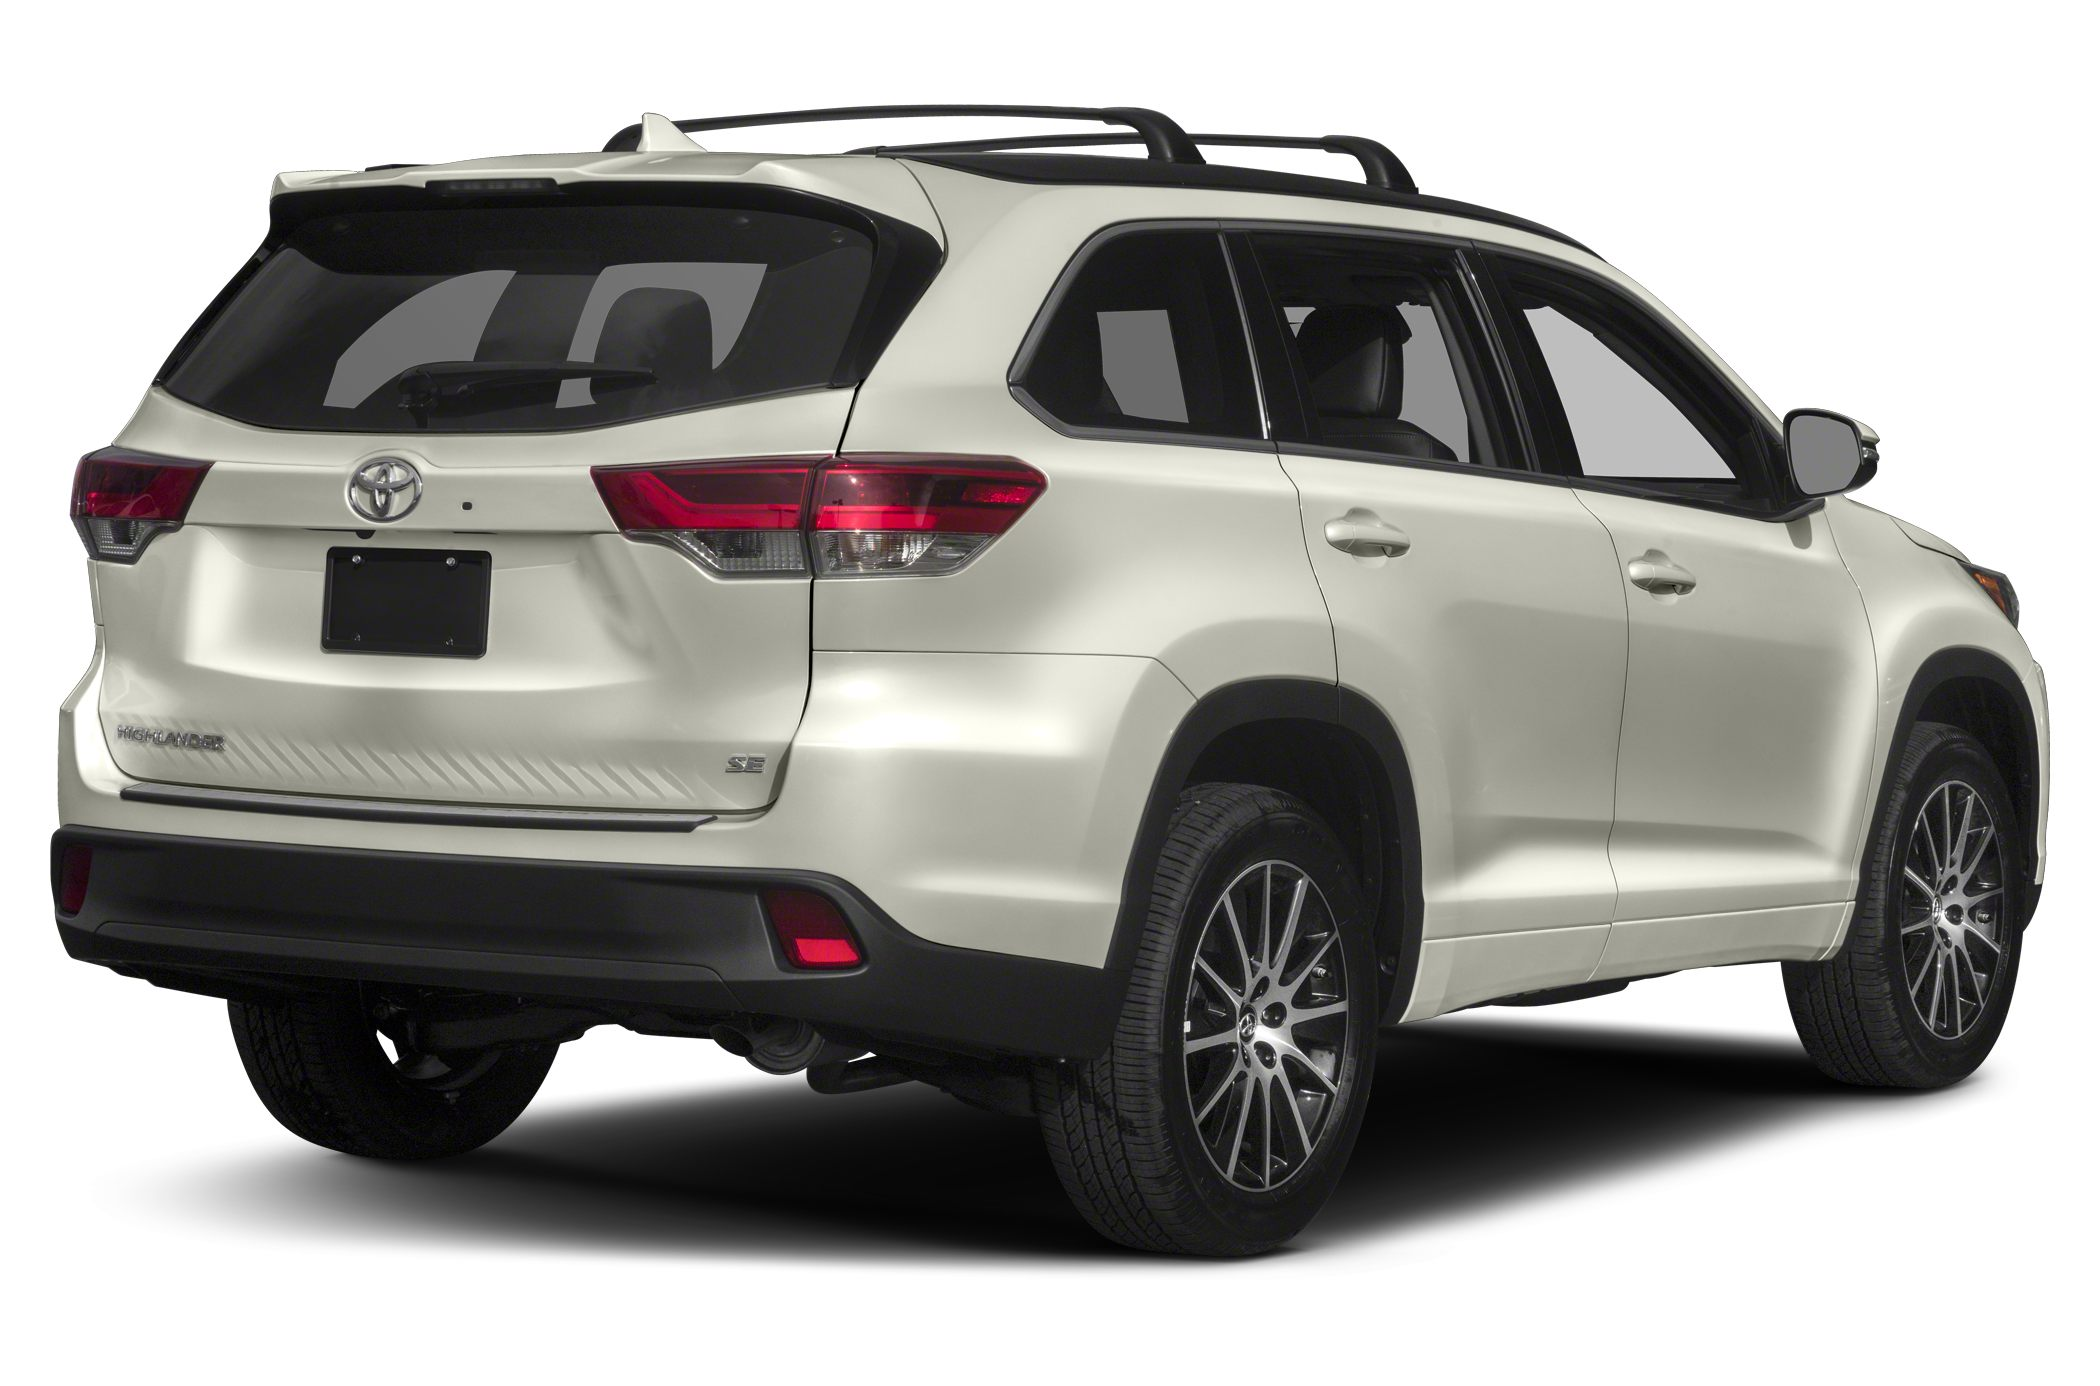 2017 toyota highlander se cars and vehicles westborough ma. Black Bedroom Furniture Sets. Home Design Ideas